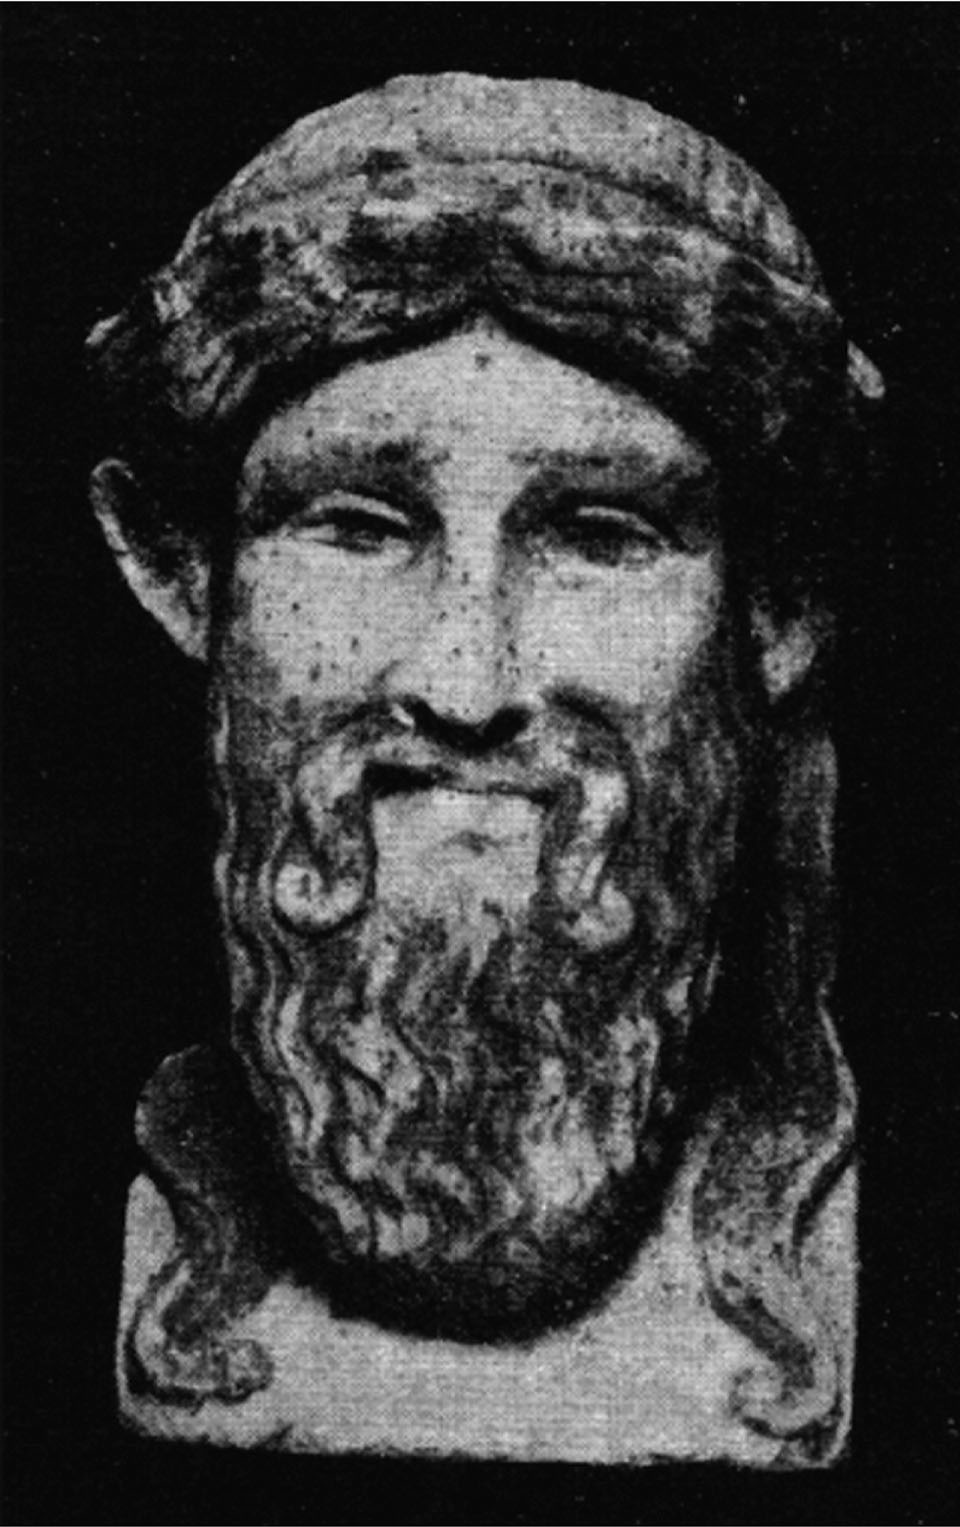 Fig. 20. Head of a marble herm, ht. 0.19 m, once part of a fence dividing the eastern and western sides of the Casa dell'Efebo garden. Some paint preserved (yellow on hair, mustache, and beard; black on eyebrows and pupils; red on fillet). The statuette is no. 4145 in the inventories from the excavations at Pompeii (after Maiuri 1927, fig. 37; courtesy Accademia Nazionale dei Lincei).